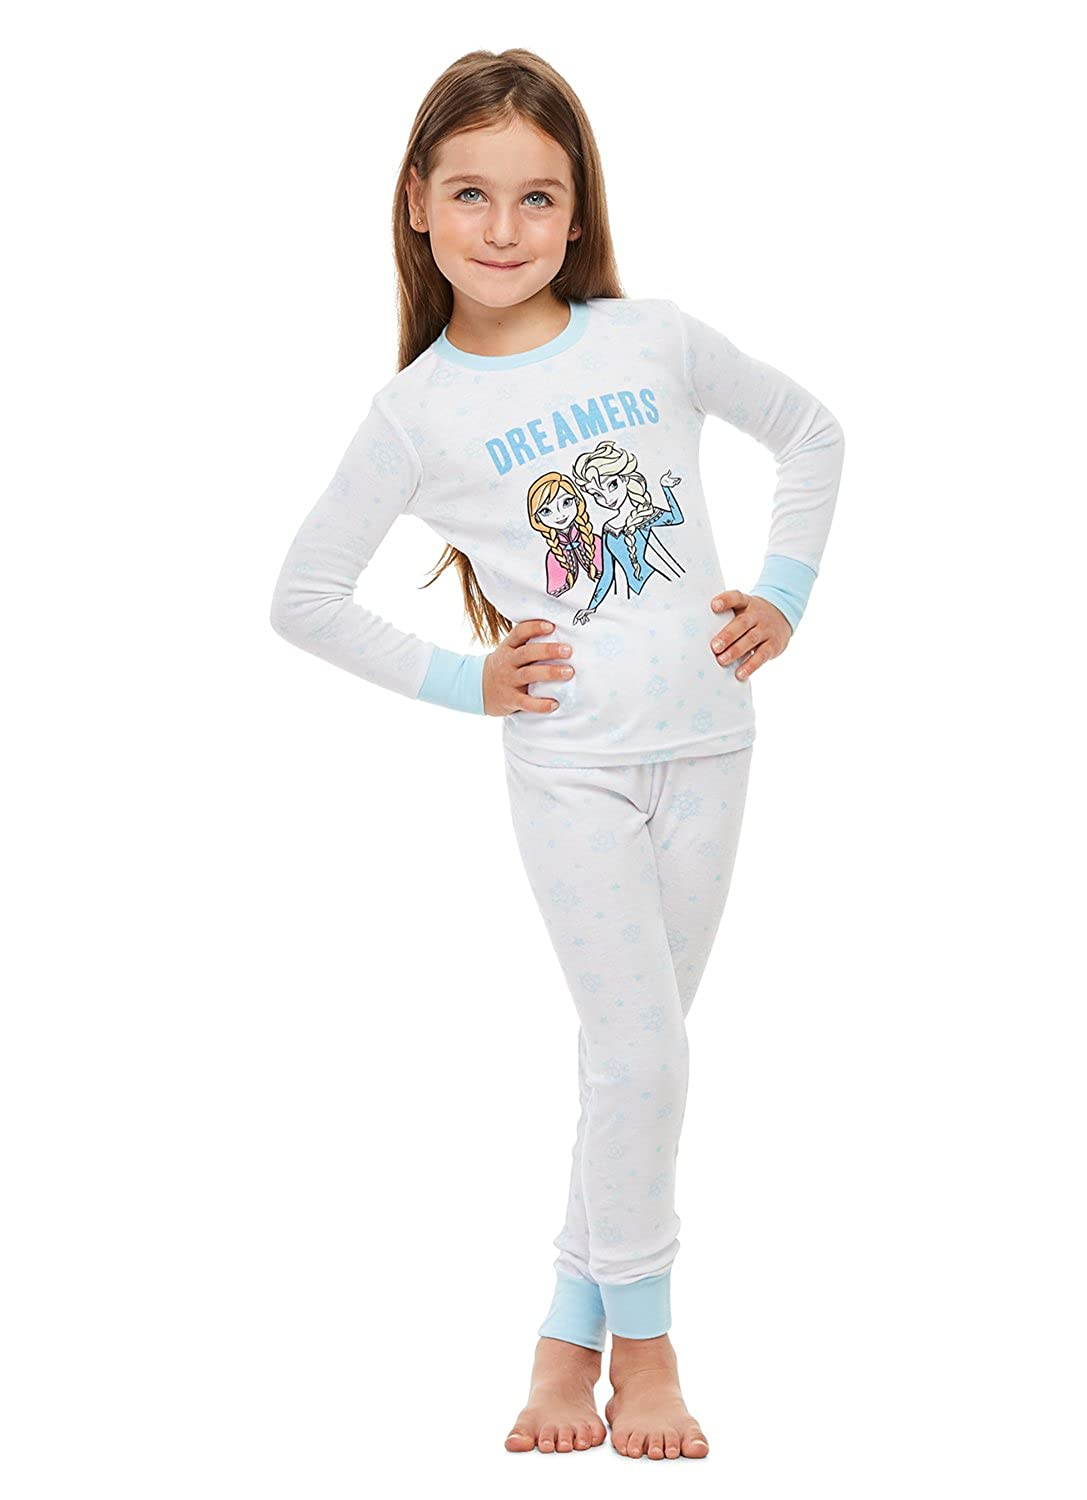 Cotton PJs For Kids Girls Pajamas Cute Sleepwear